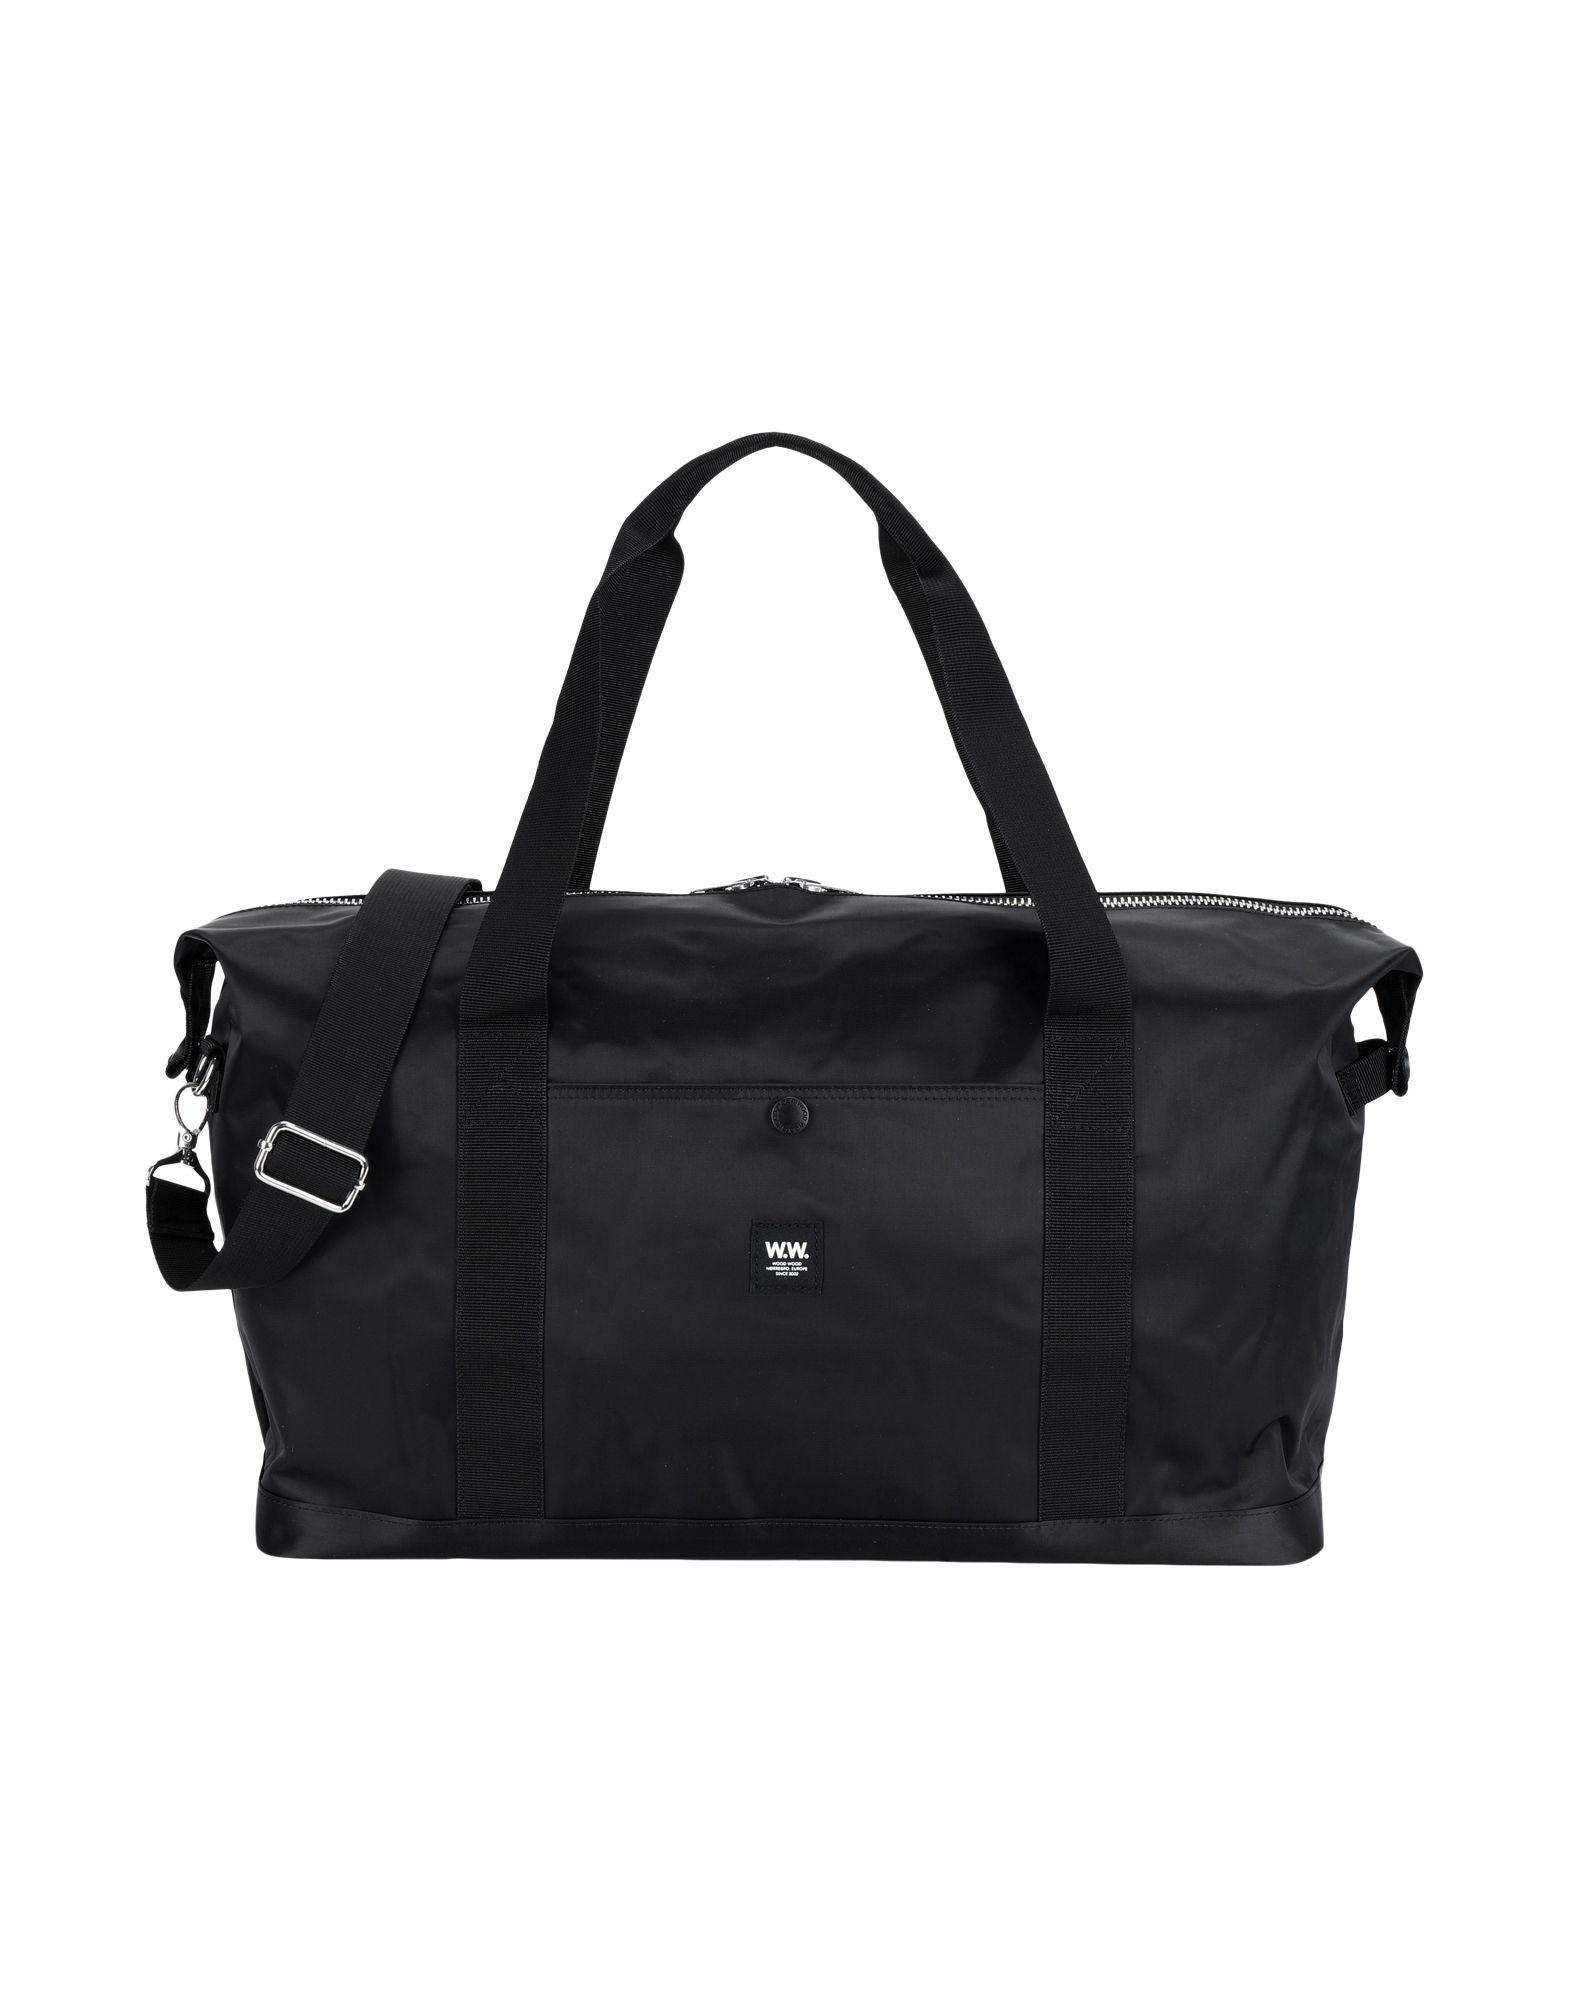 Wood Wood Luggage in Black for Men - Lyst 76ea571caf5a4